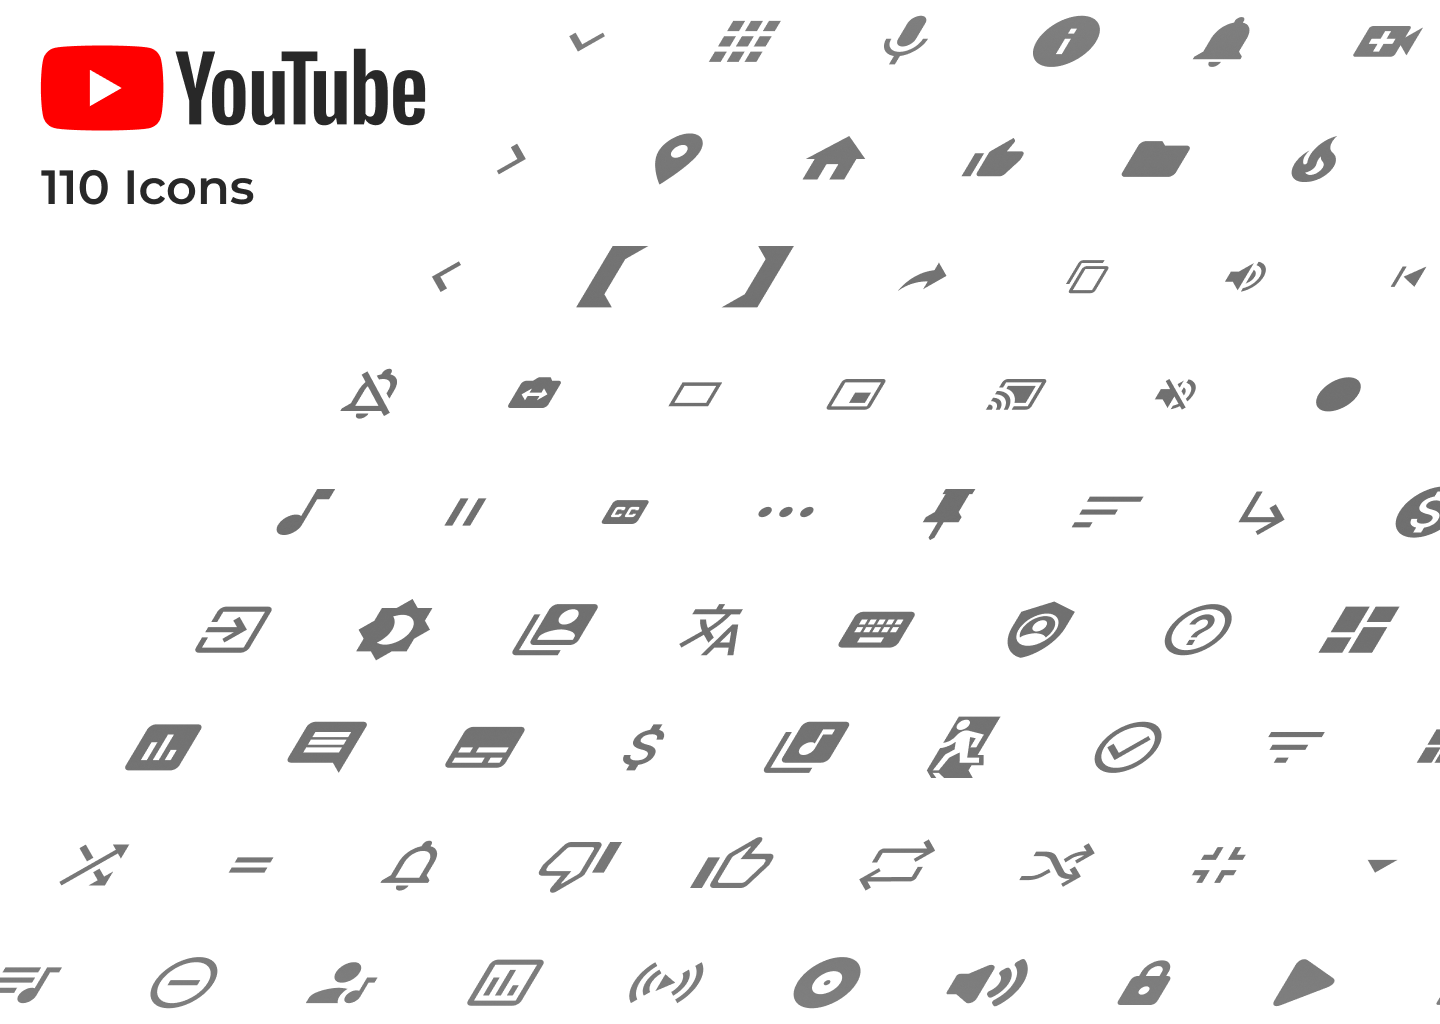 YouTube Icons cover image